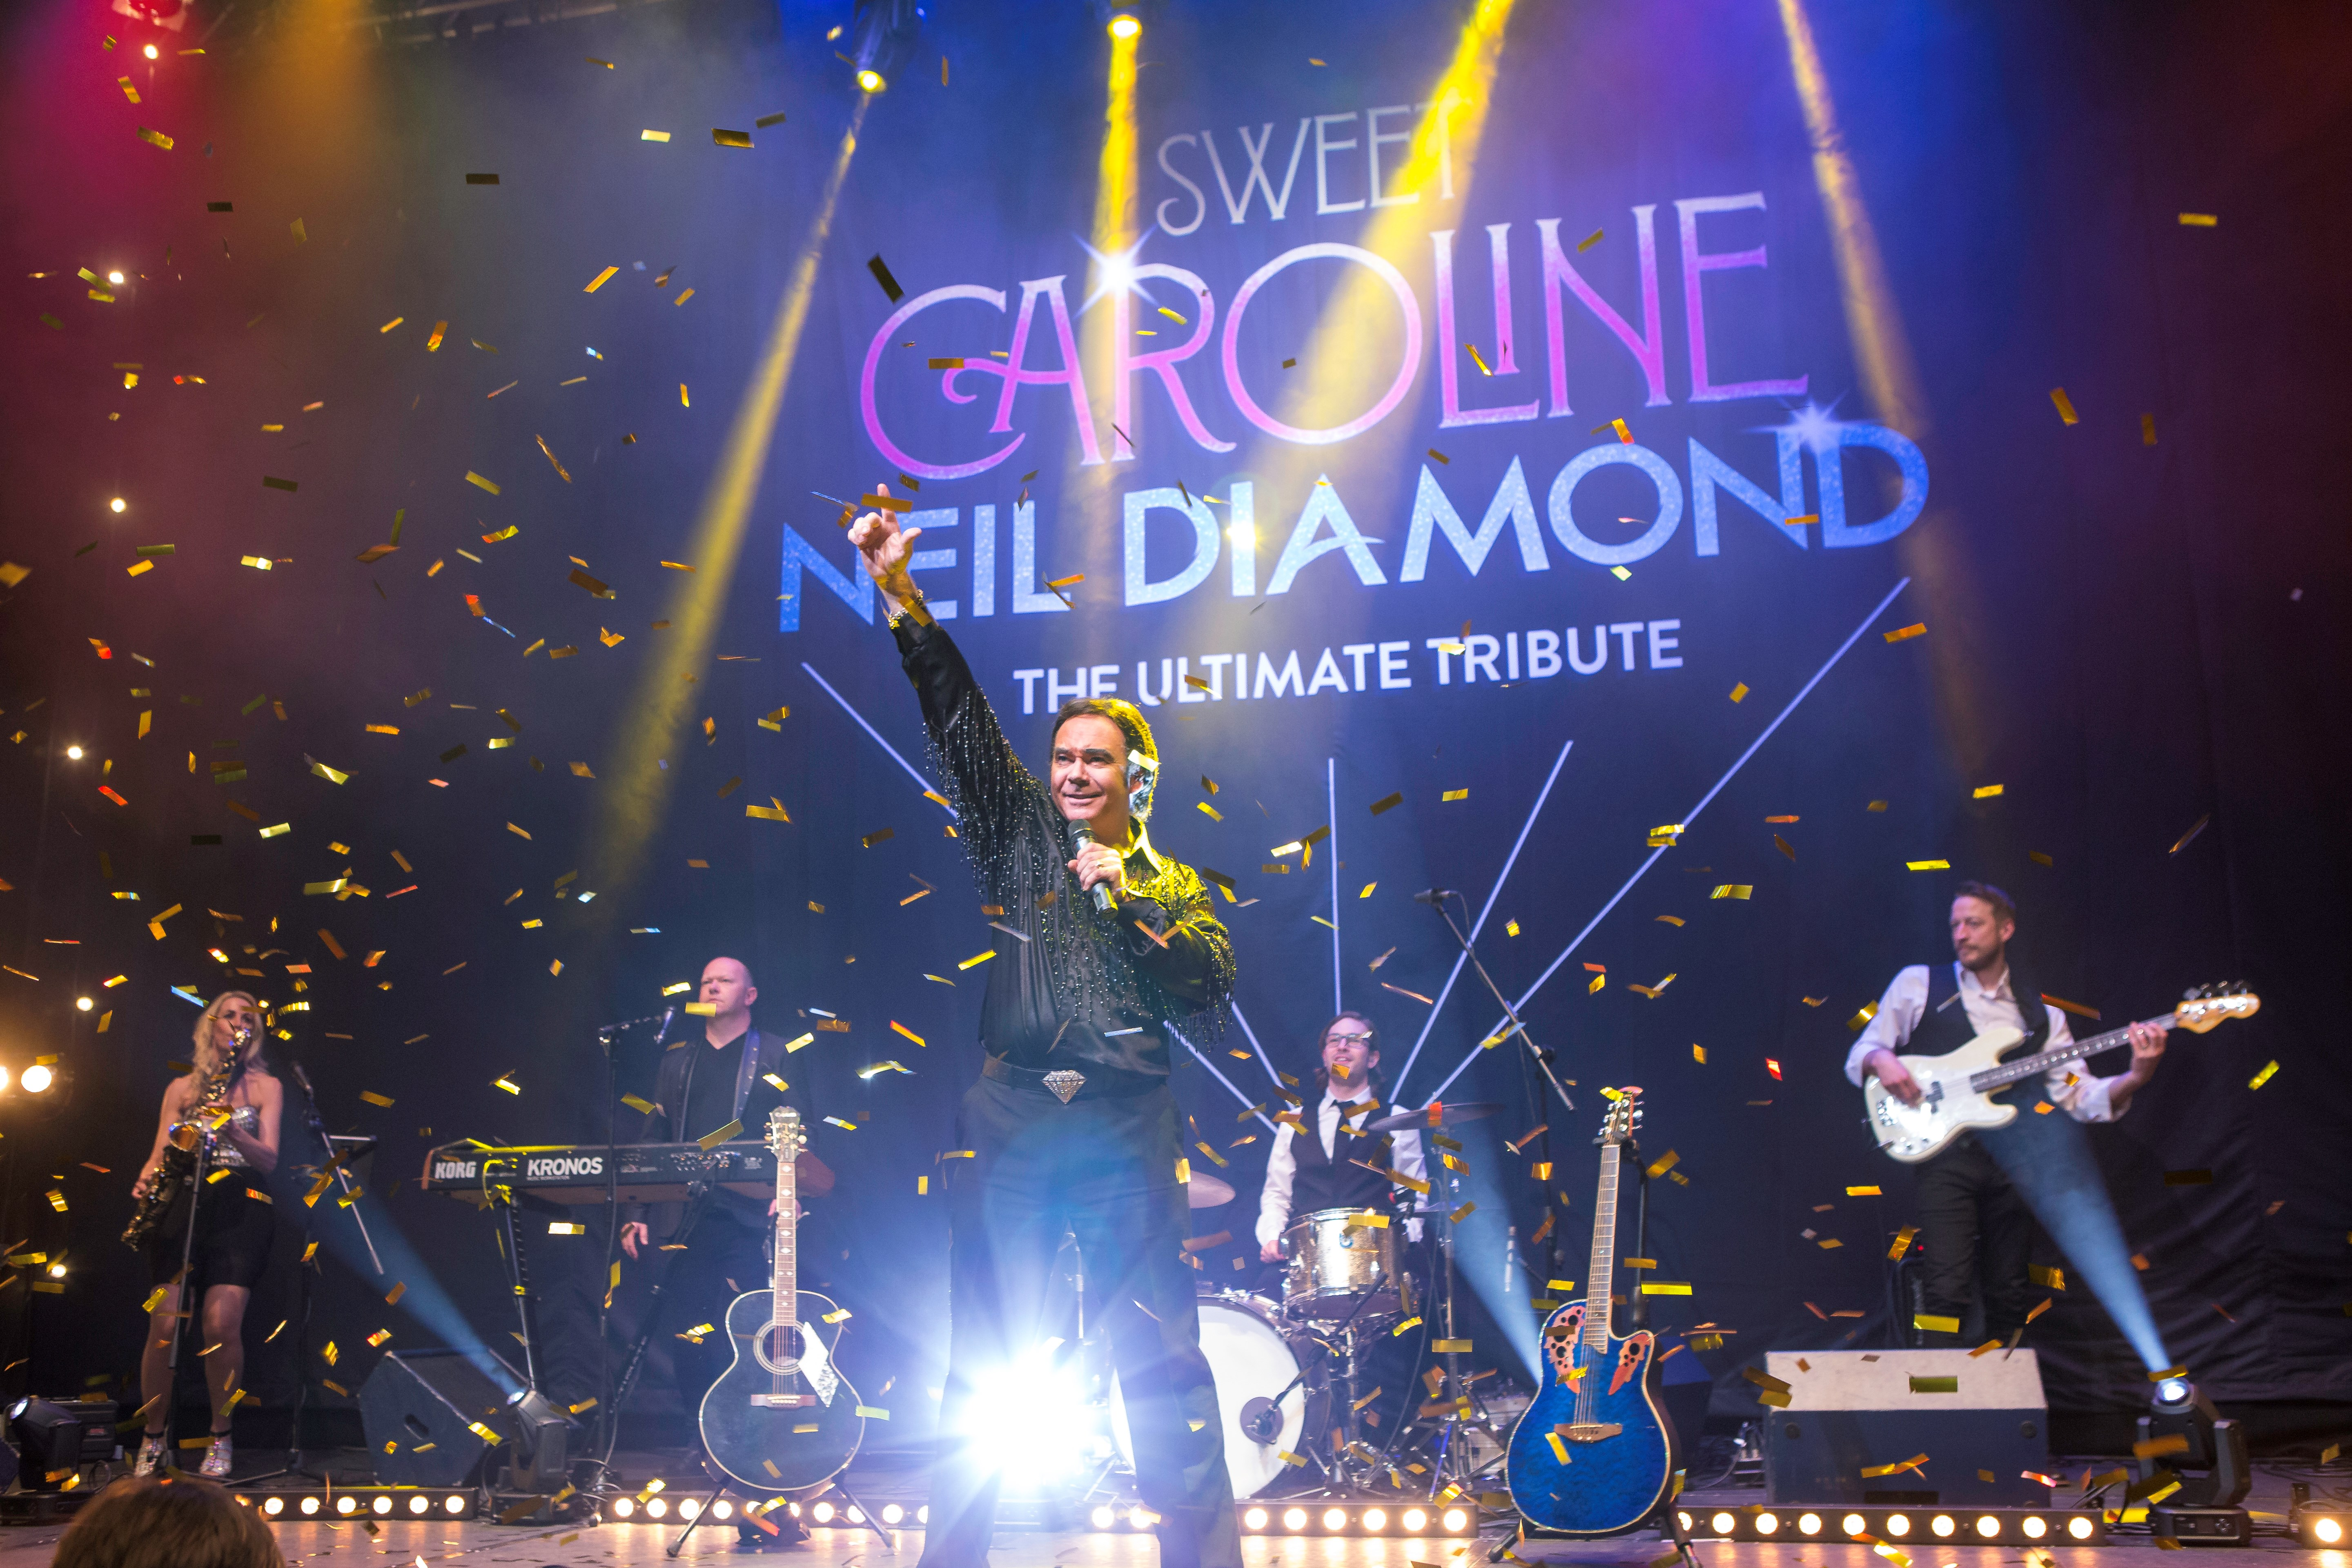 Sweet Caroline - The ultimate Tribute to Neil Diamond - (fotograaf onbekend) - scenefoto liggend.jpg